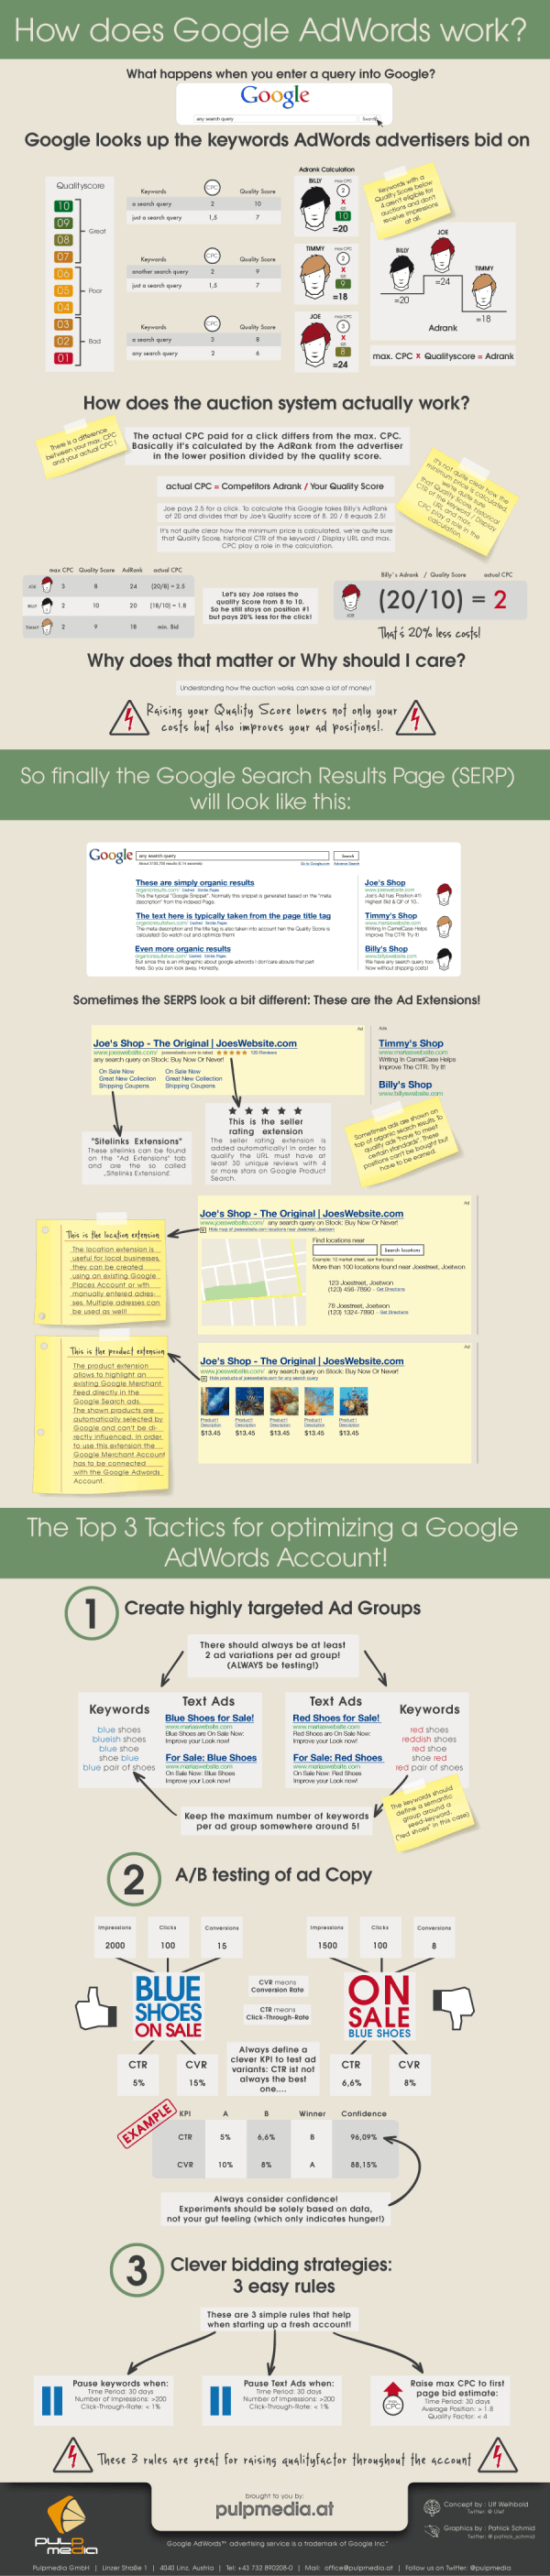 Google Adwords PPC Advertising